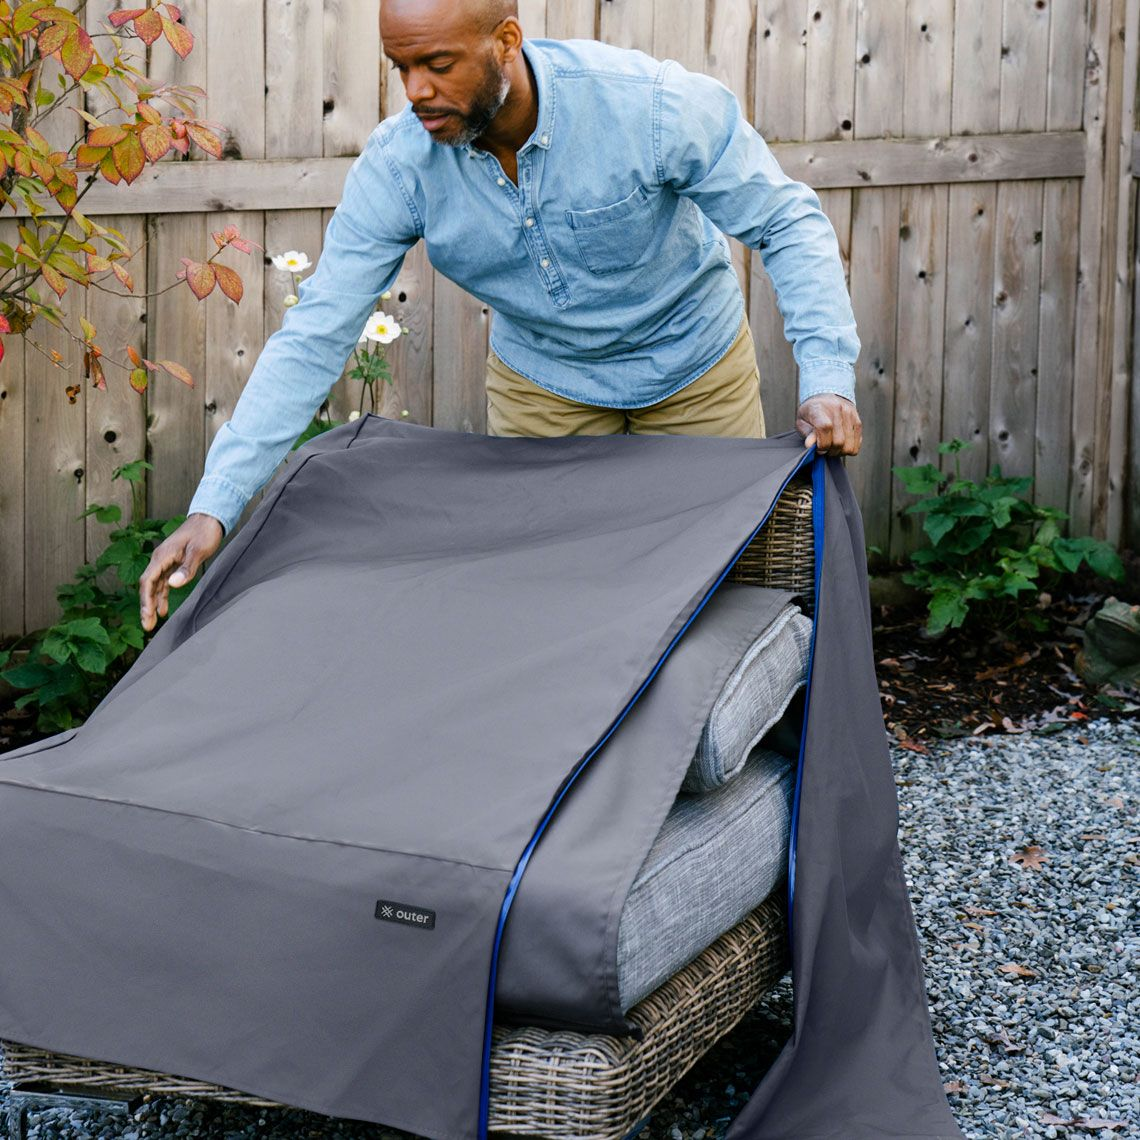 Man putting outdoor furniture covers on